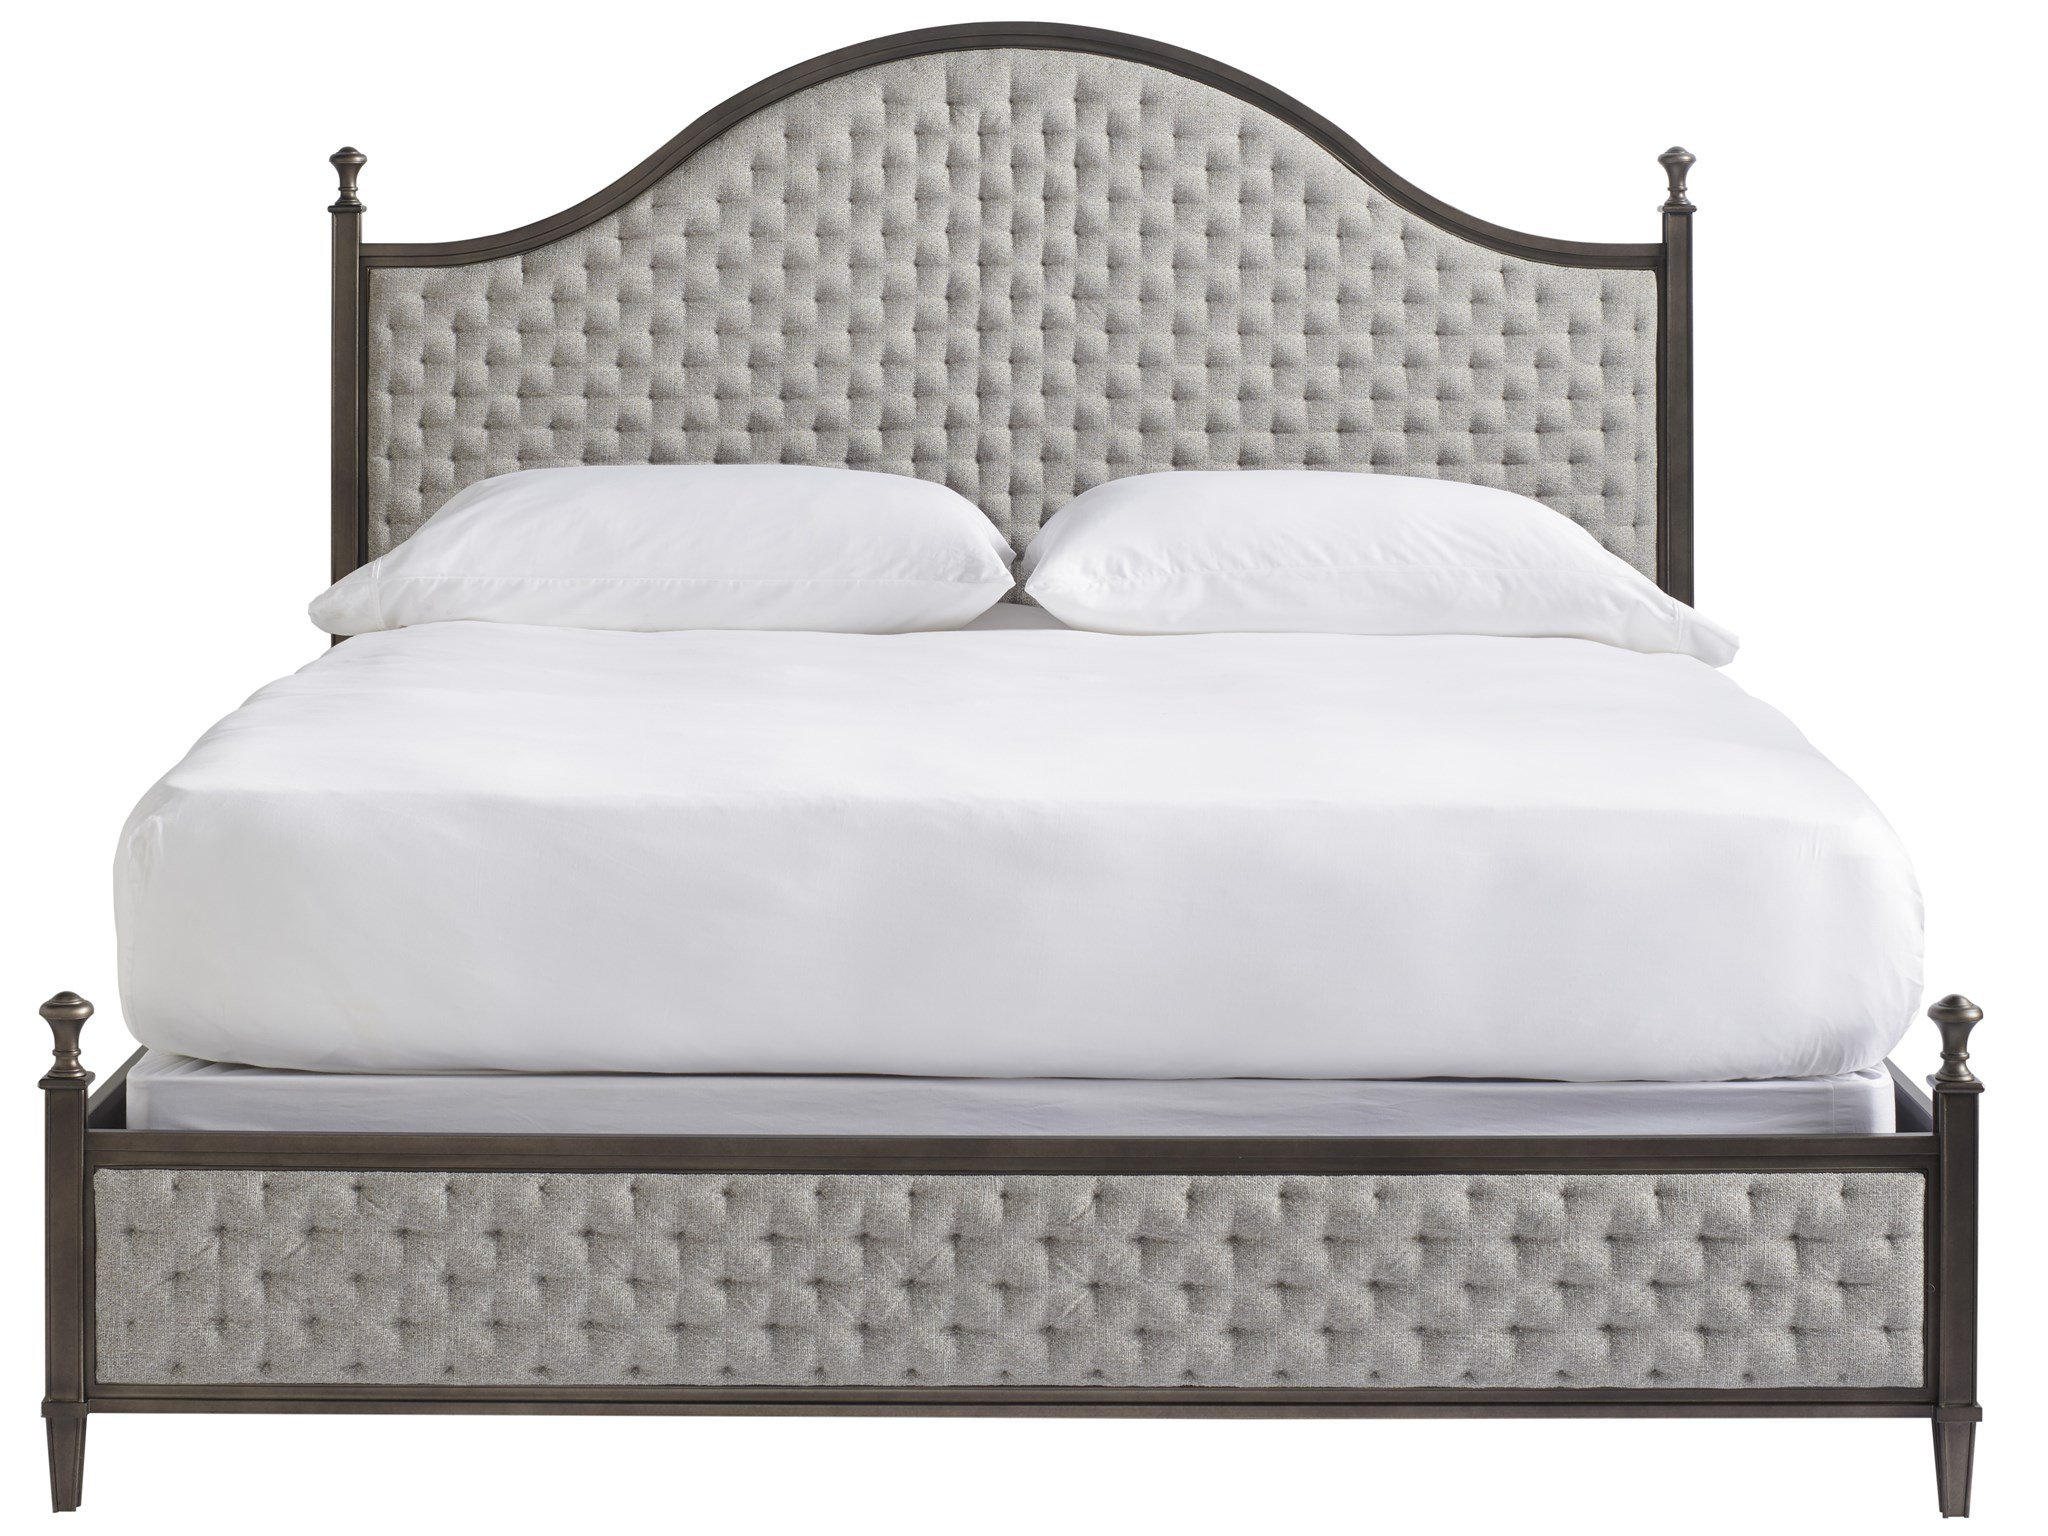 Traditions Kingsbury Carnegie King Bed Universal Furniture